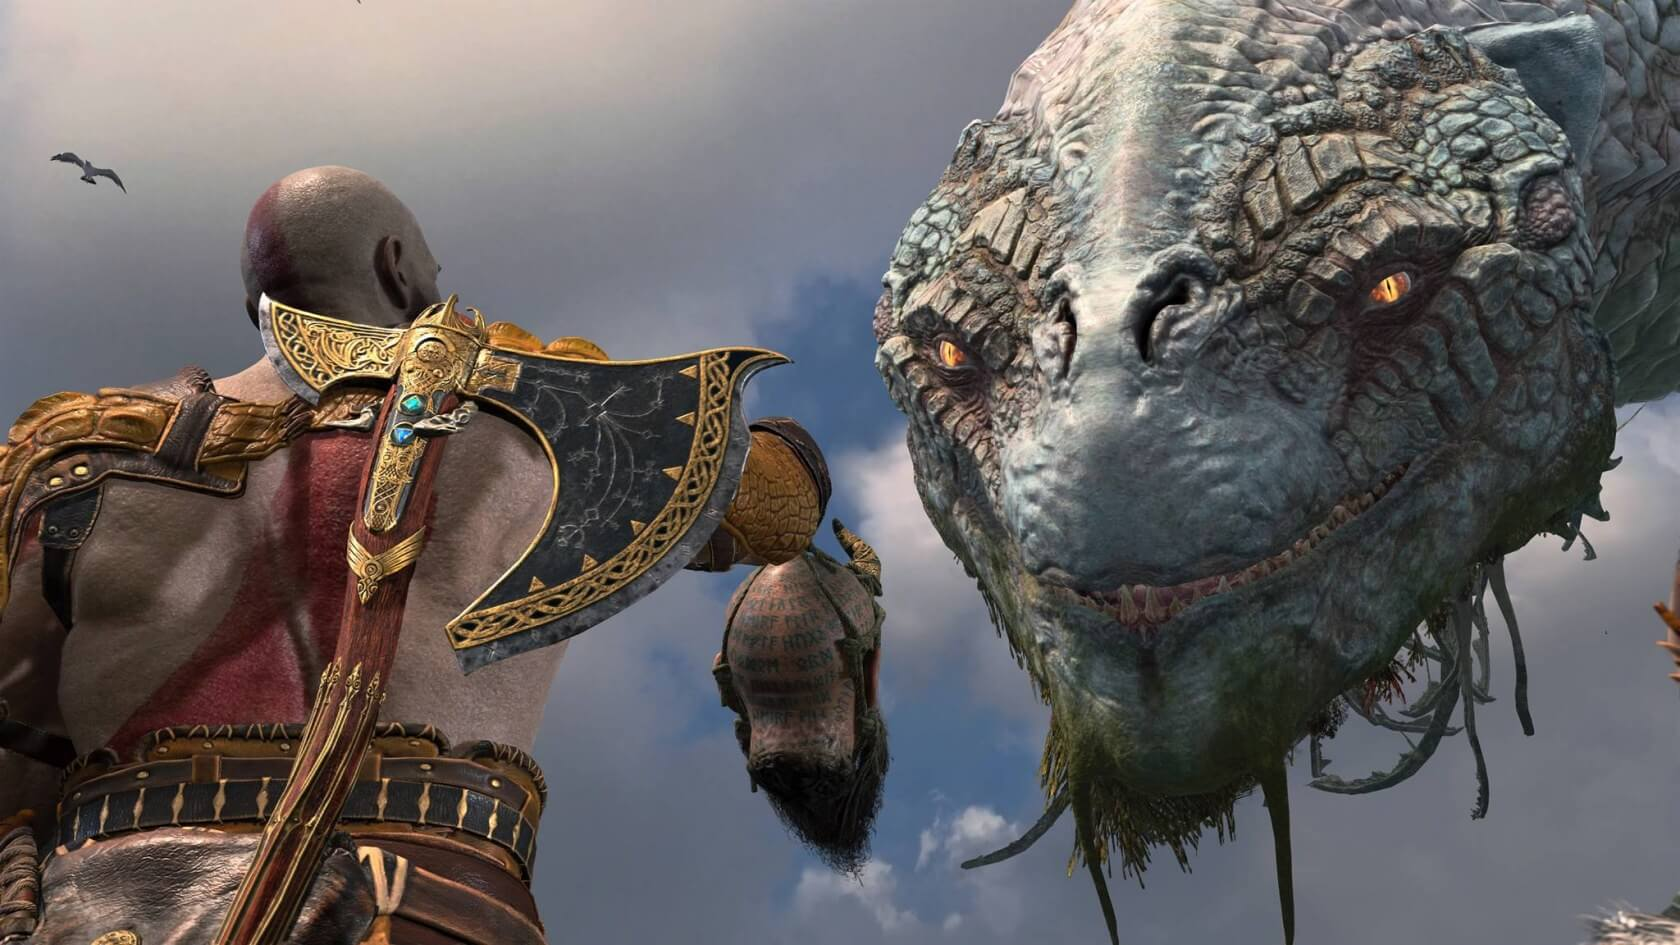 'God of War' Photo Mode: How to Download and Use New Feature